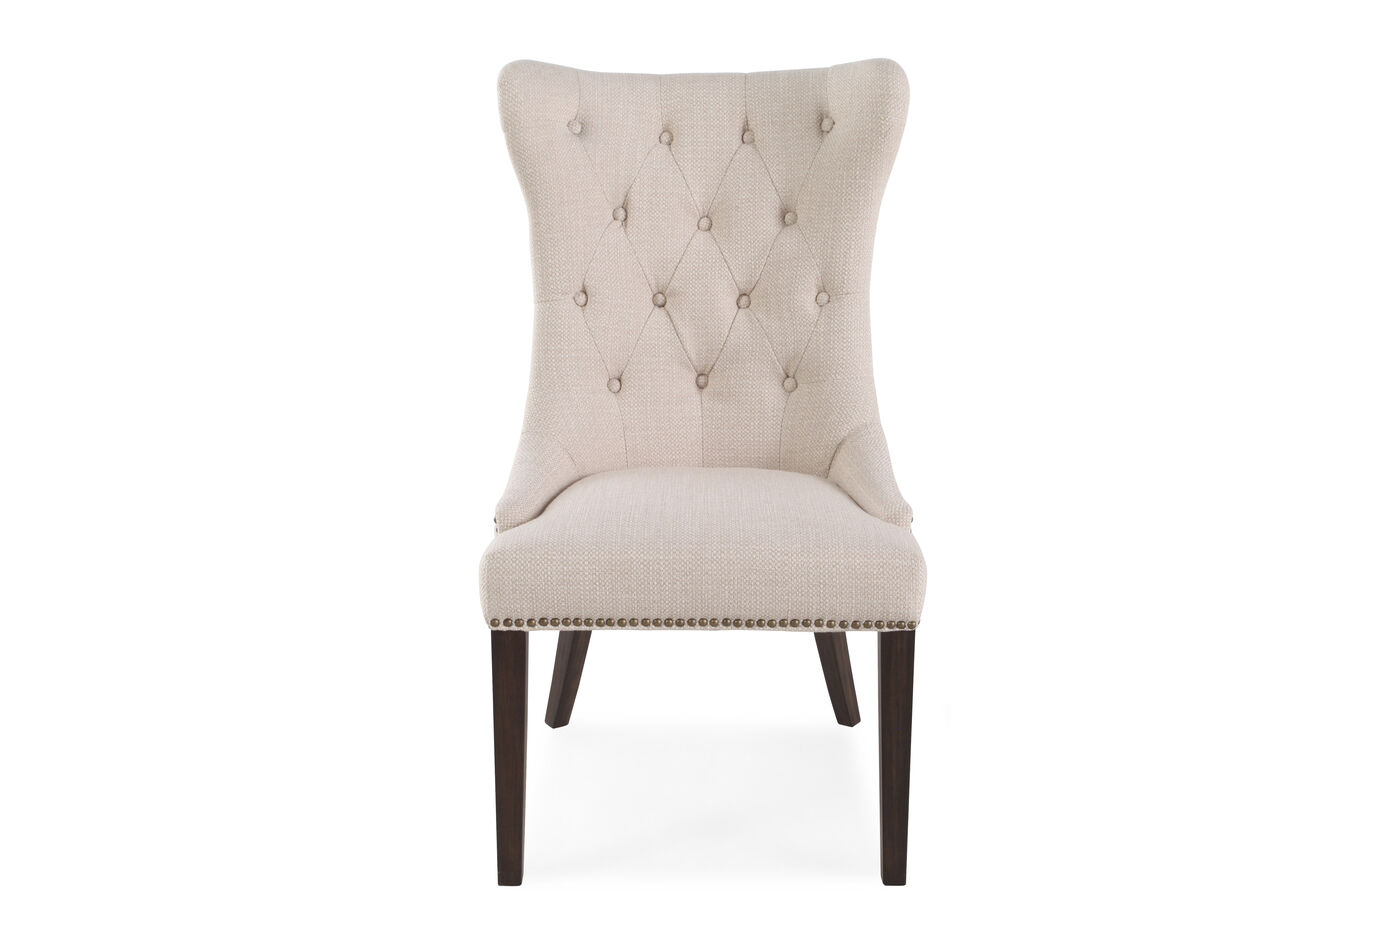 Boulevard Oatmeal Tufted Back Dining Chair | Mathis ...